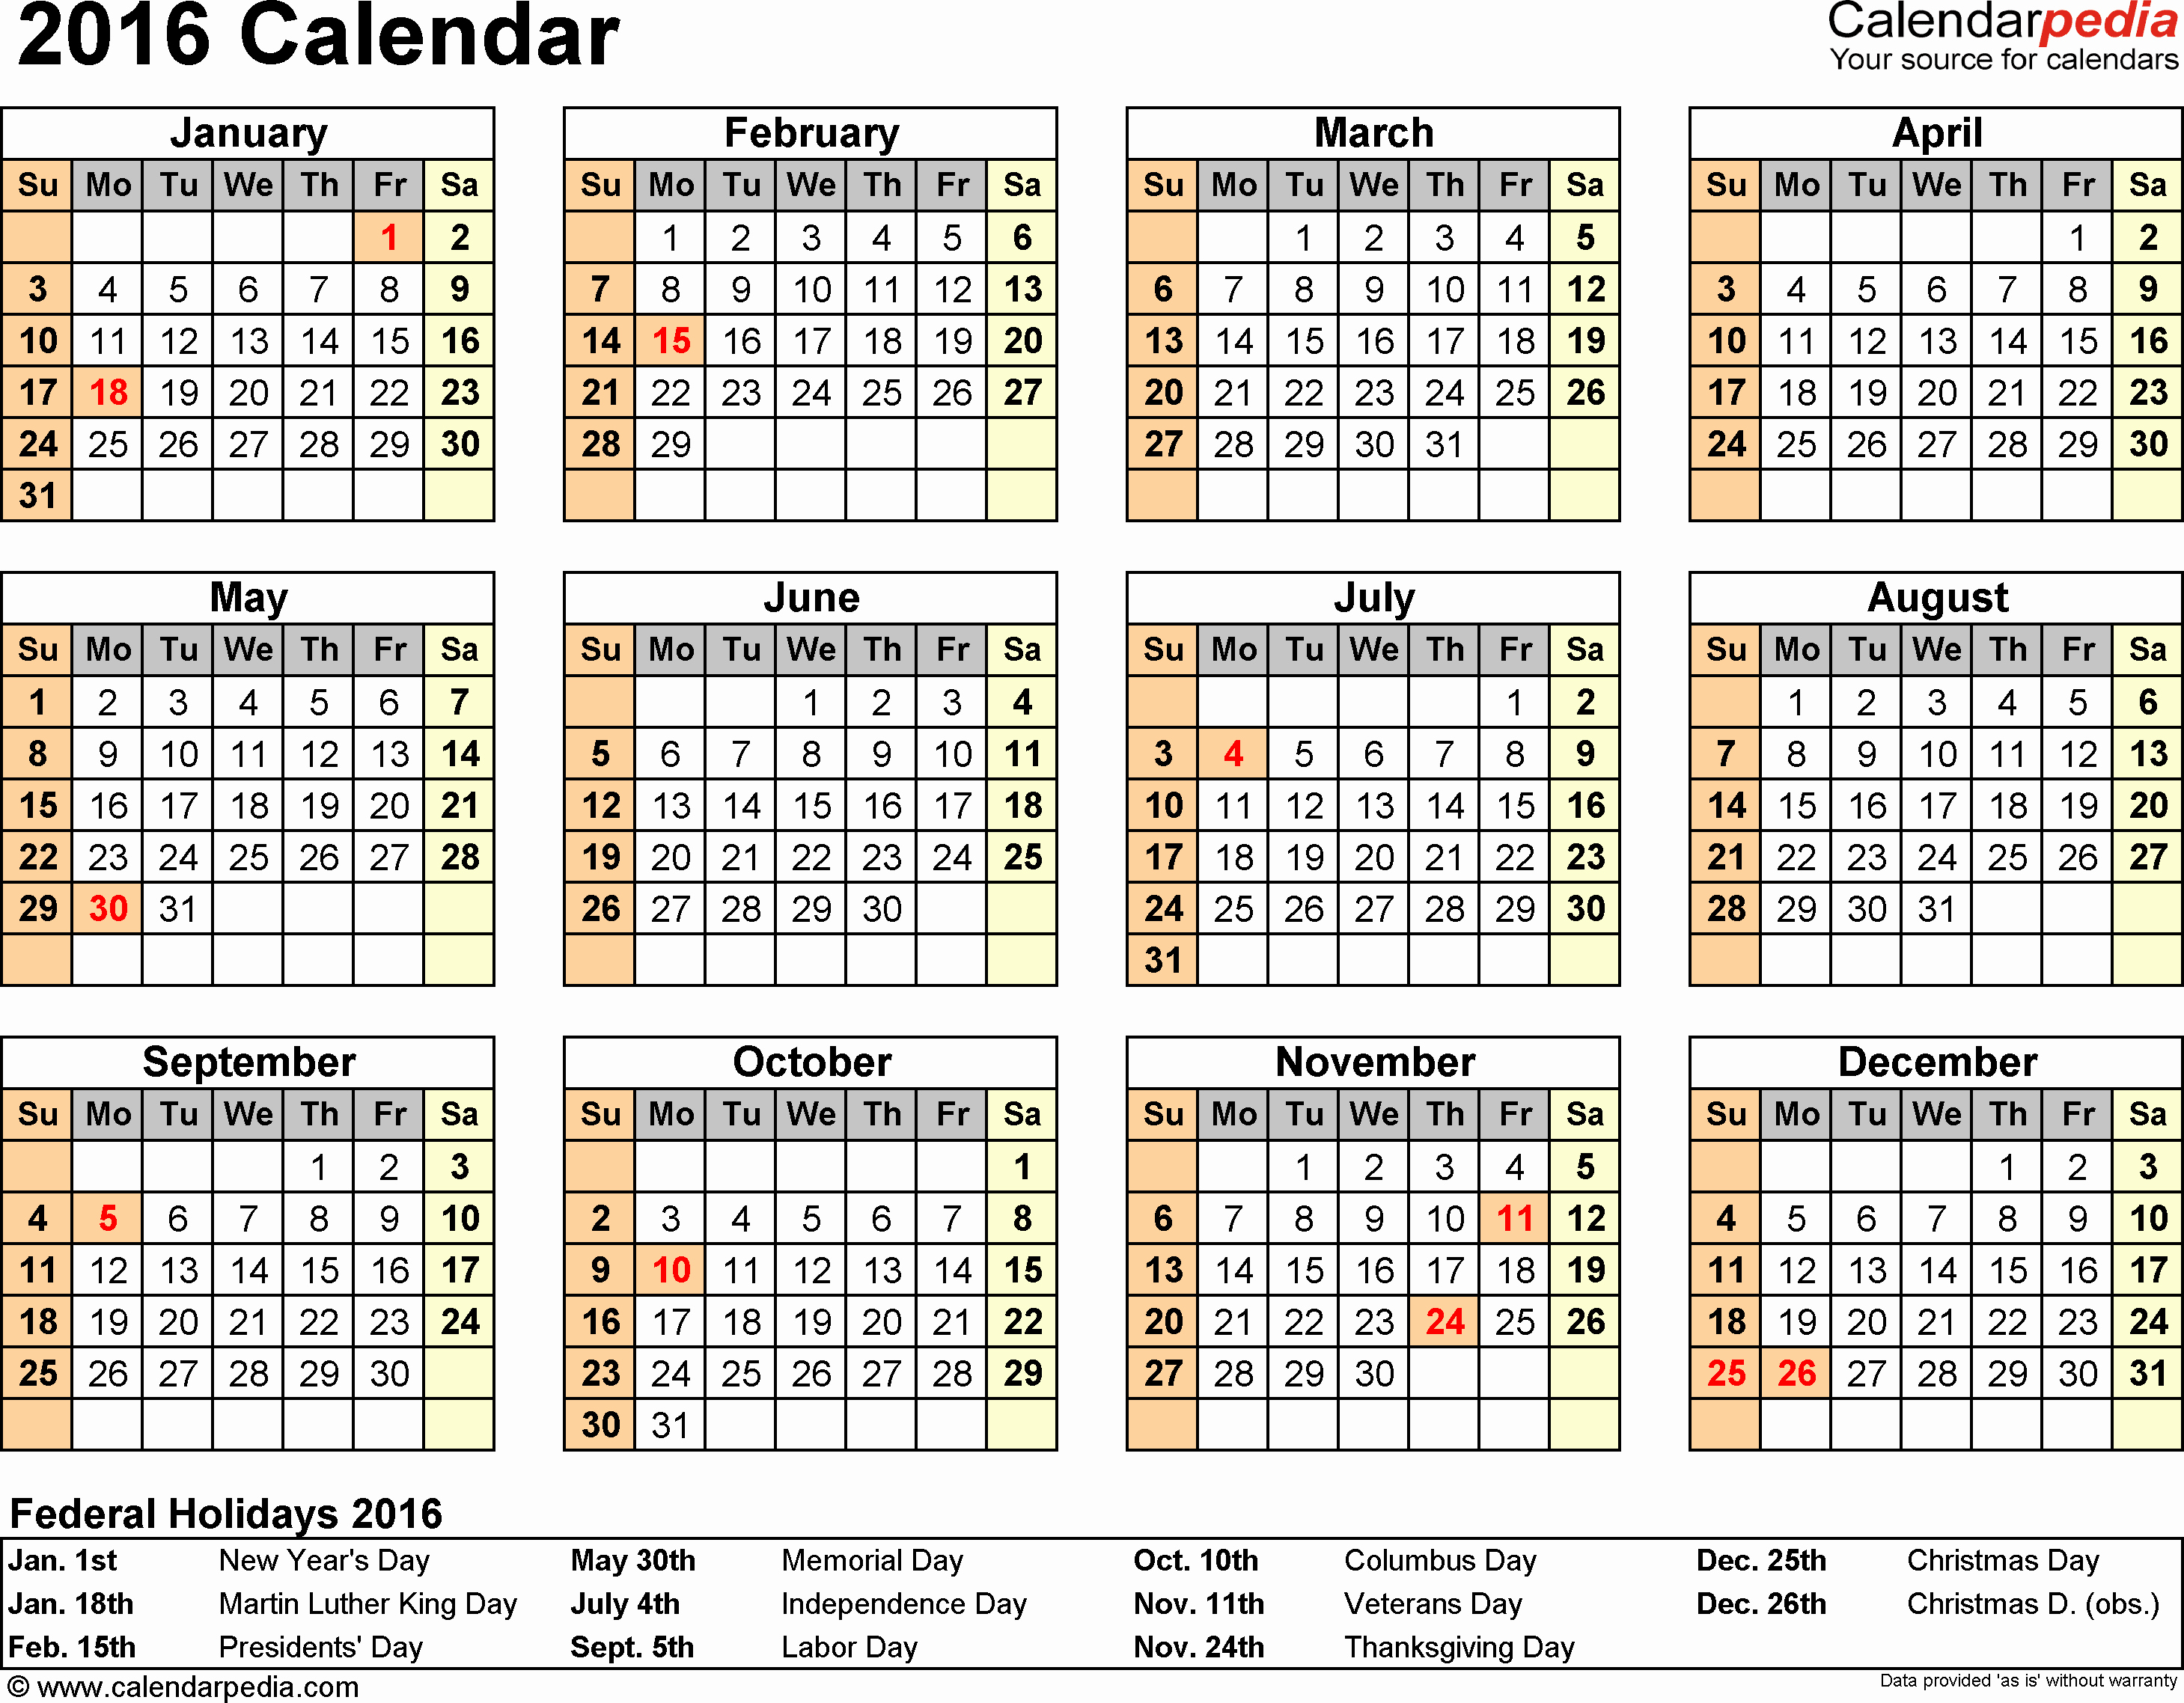 Calendar 2016 Printable with Holidays Inspirational 2016 Calendar Download 16 Free Printable Excel Templates